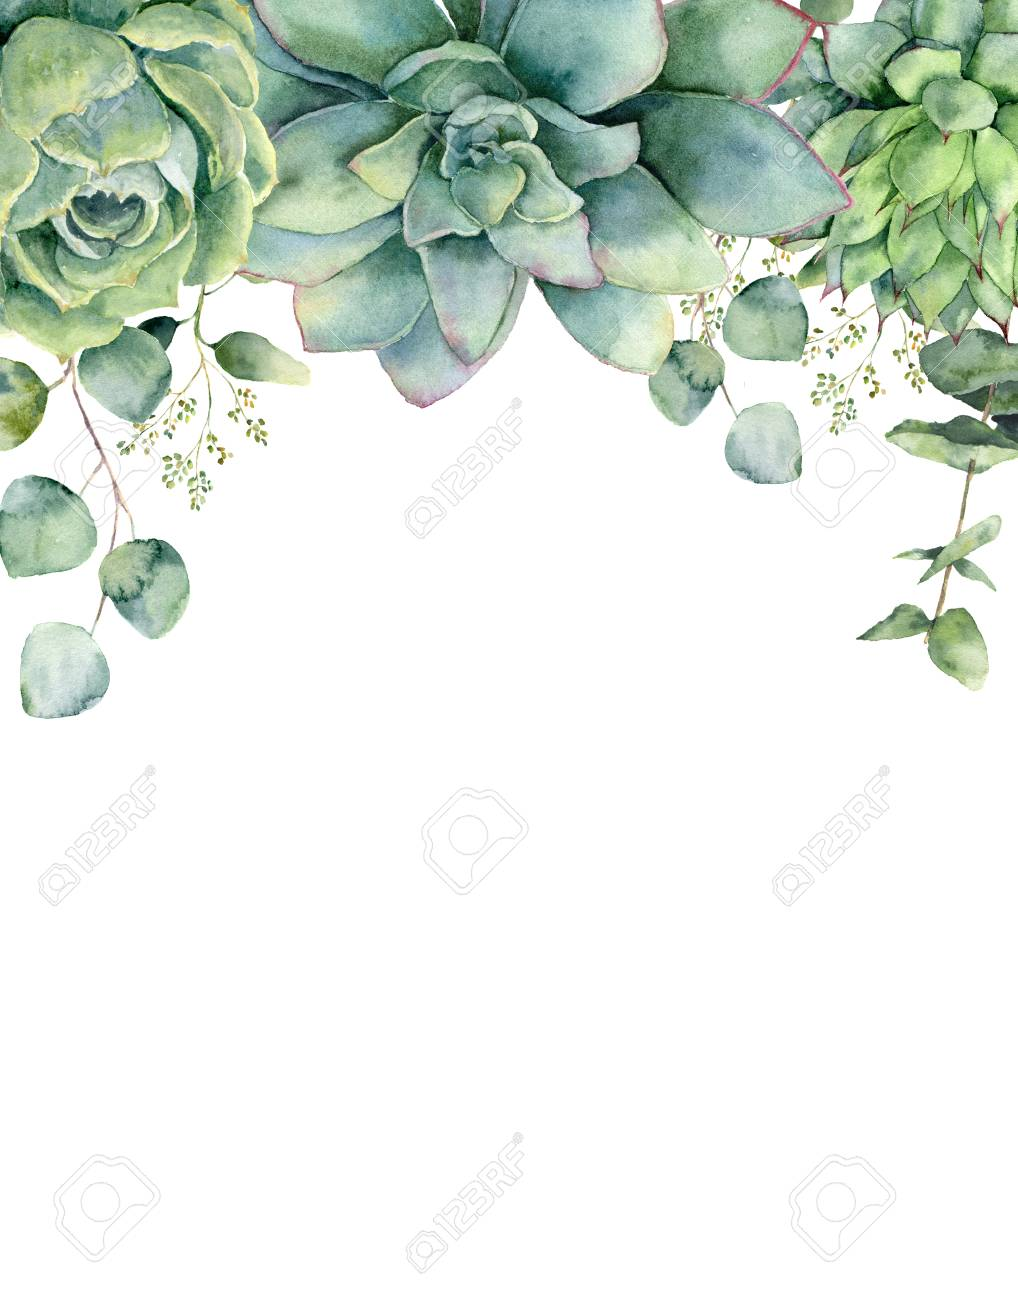 Watercolor card with succulents and eucalyptus leaves. Hand painted eucalyptus branch, green succulents isolated on white background. Floral botanical illustration for design, print or background. - 106513260